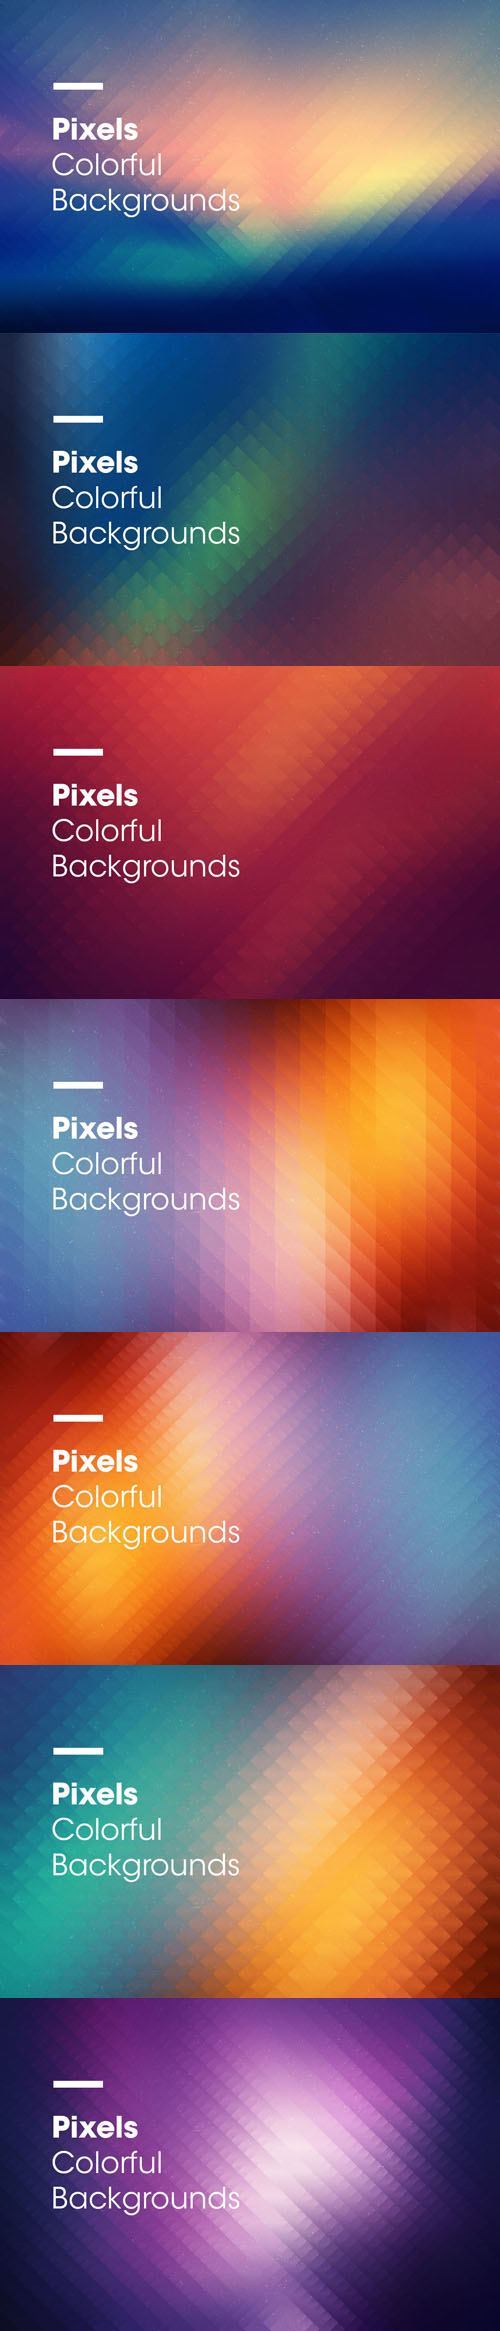 Pixels | Colorful Backgrounds